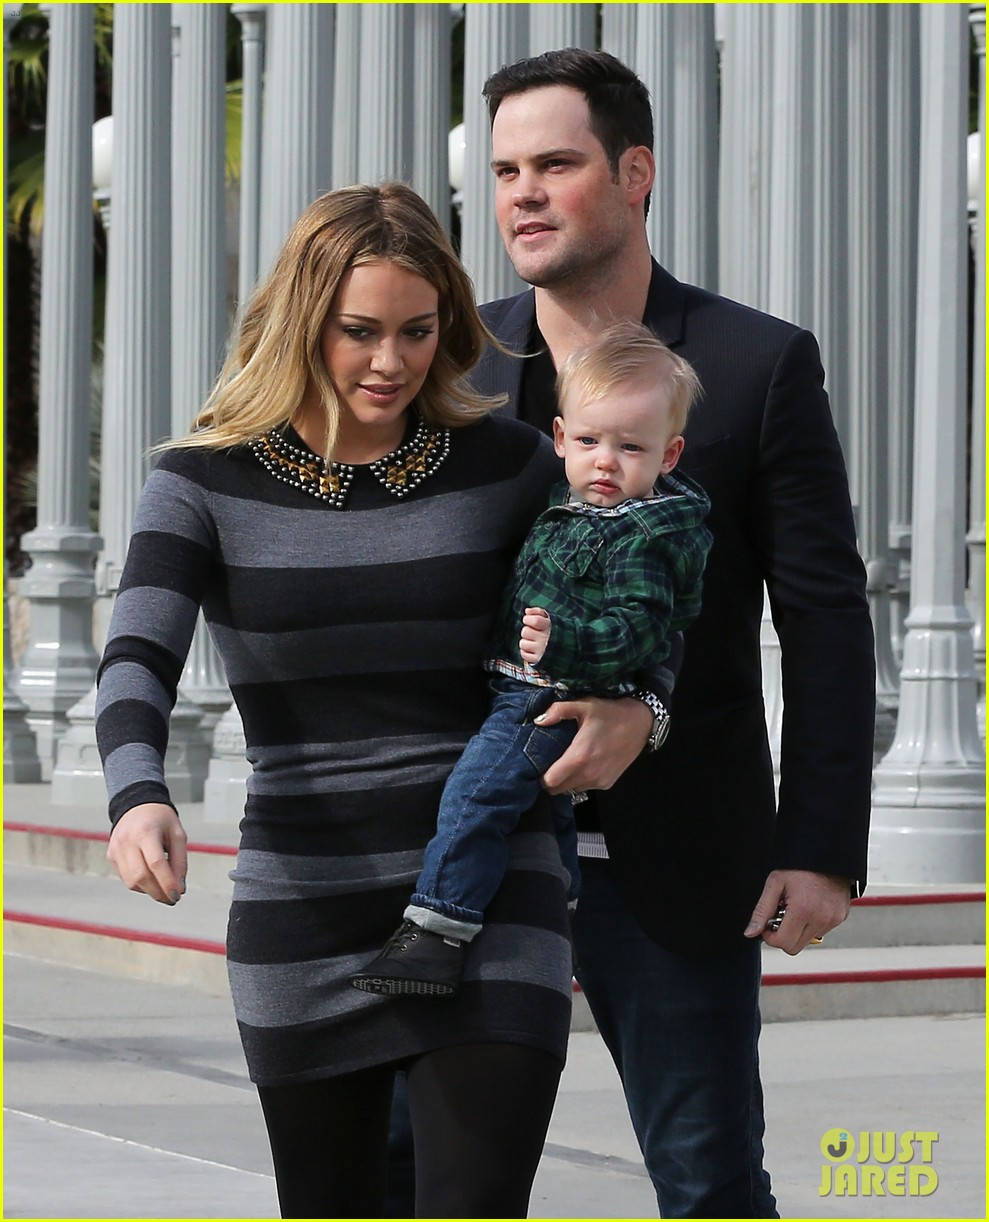 Hilary Duff & Mike Comrie: Fun Family Day with Luca! Hilary Duff